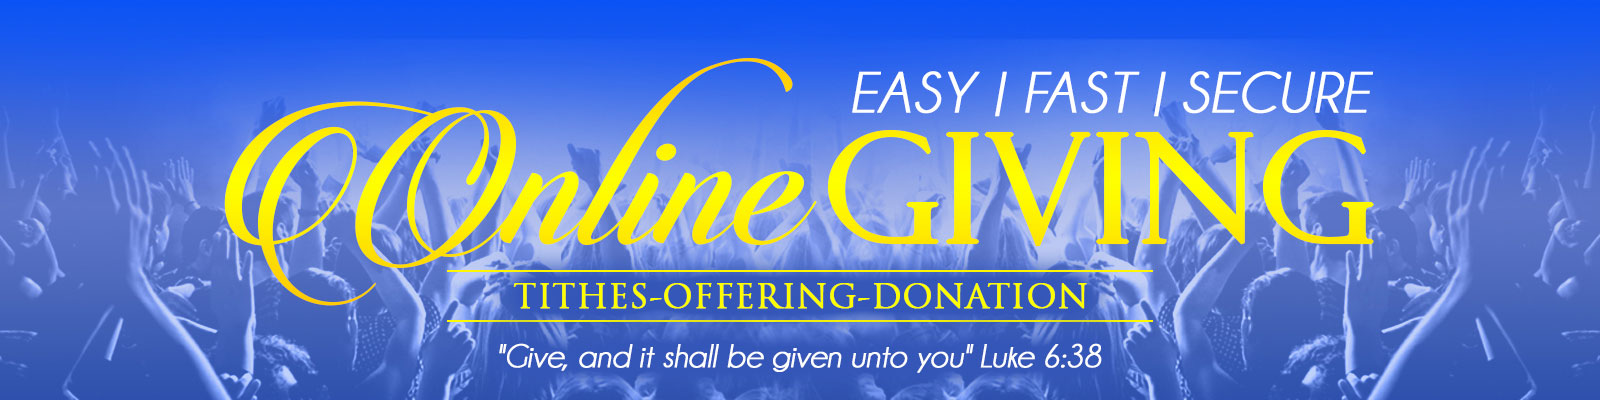 online giving123